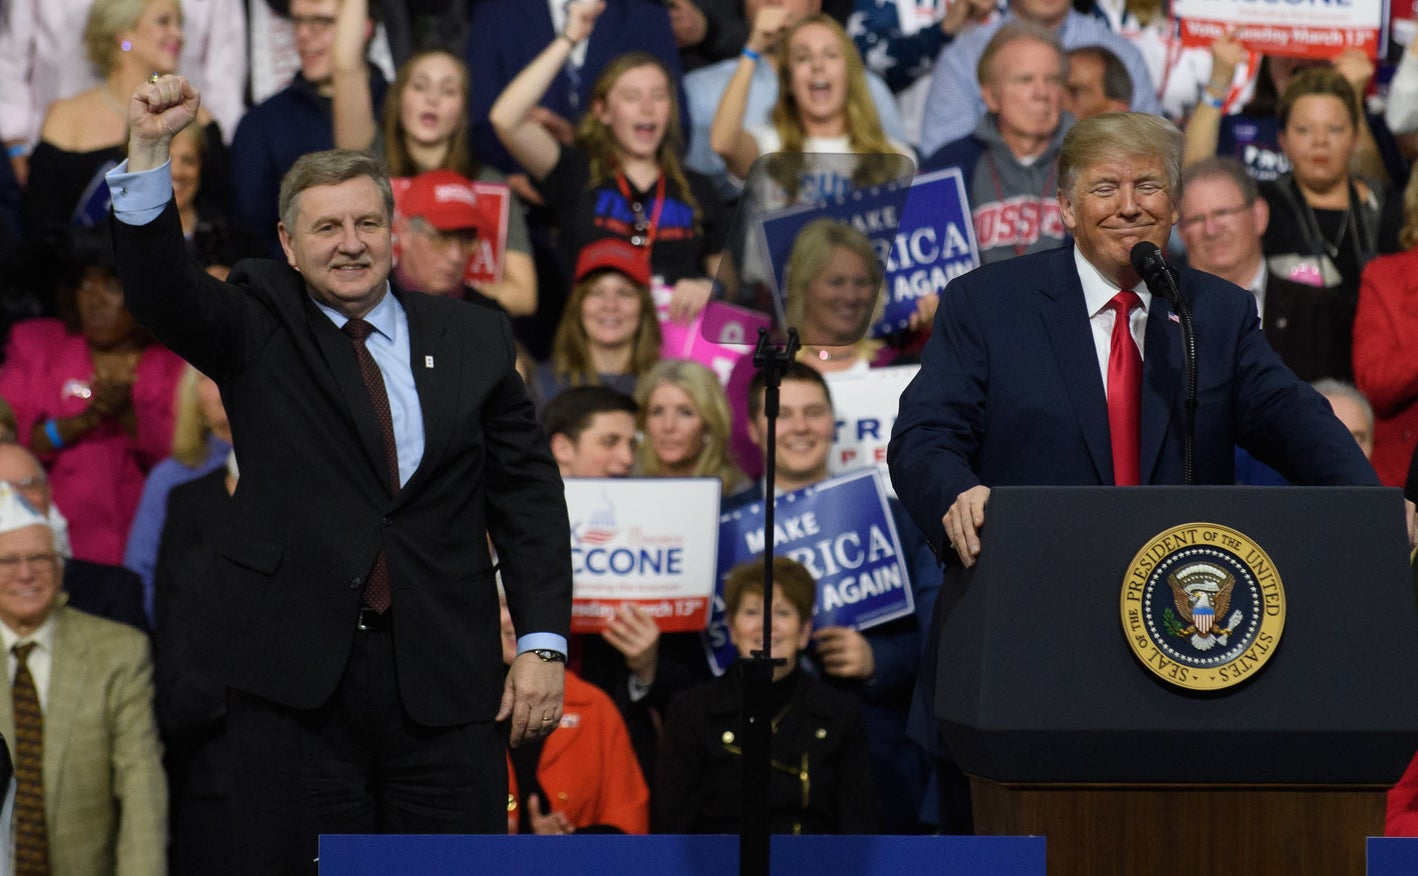 Trump with Saccone at the rally at Atlantic Aviation Hanger on March 10, 2018, in Moon Township, Pennsylvania.